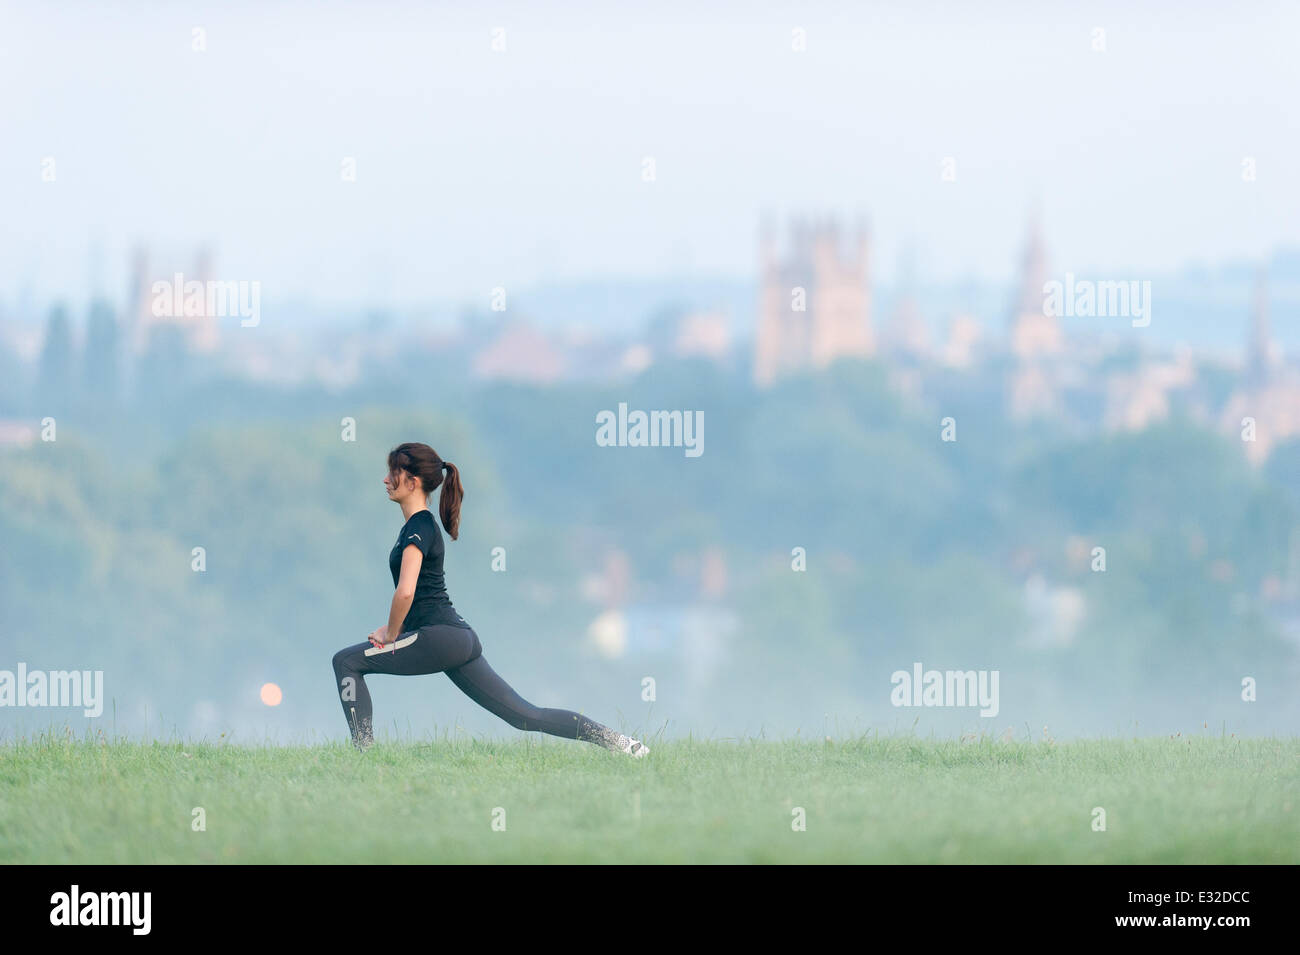 A girl jogging on a misty morning in South Park, Oxford, UK - Stock Image